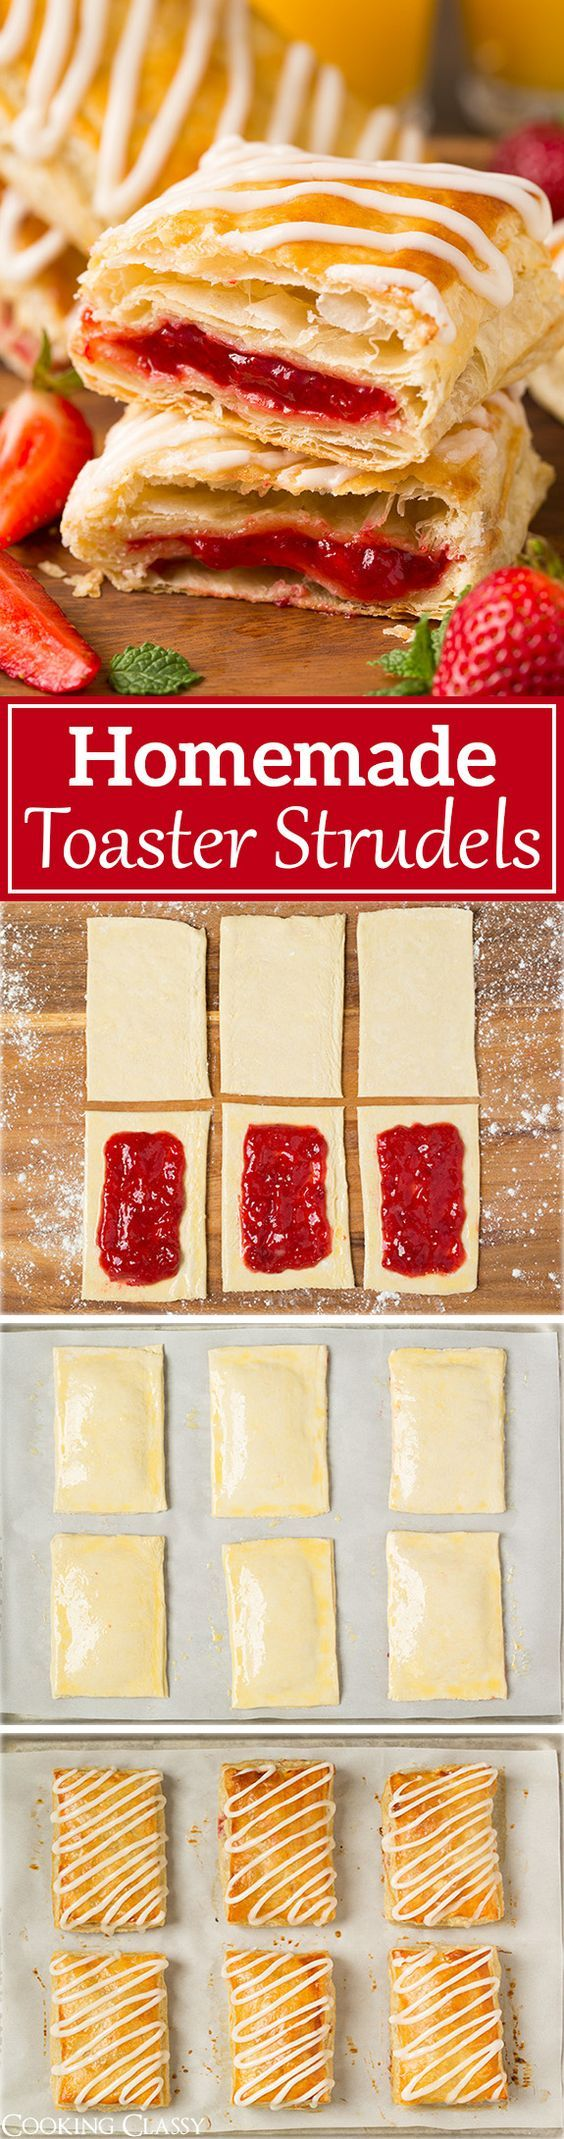 Homemade Toaster Strudels - these are SO much better than the store bought kind! Love all those flaky layers and the icing is amazing!: